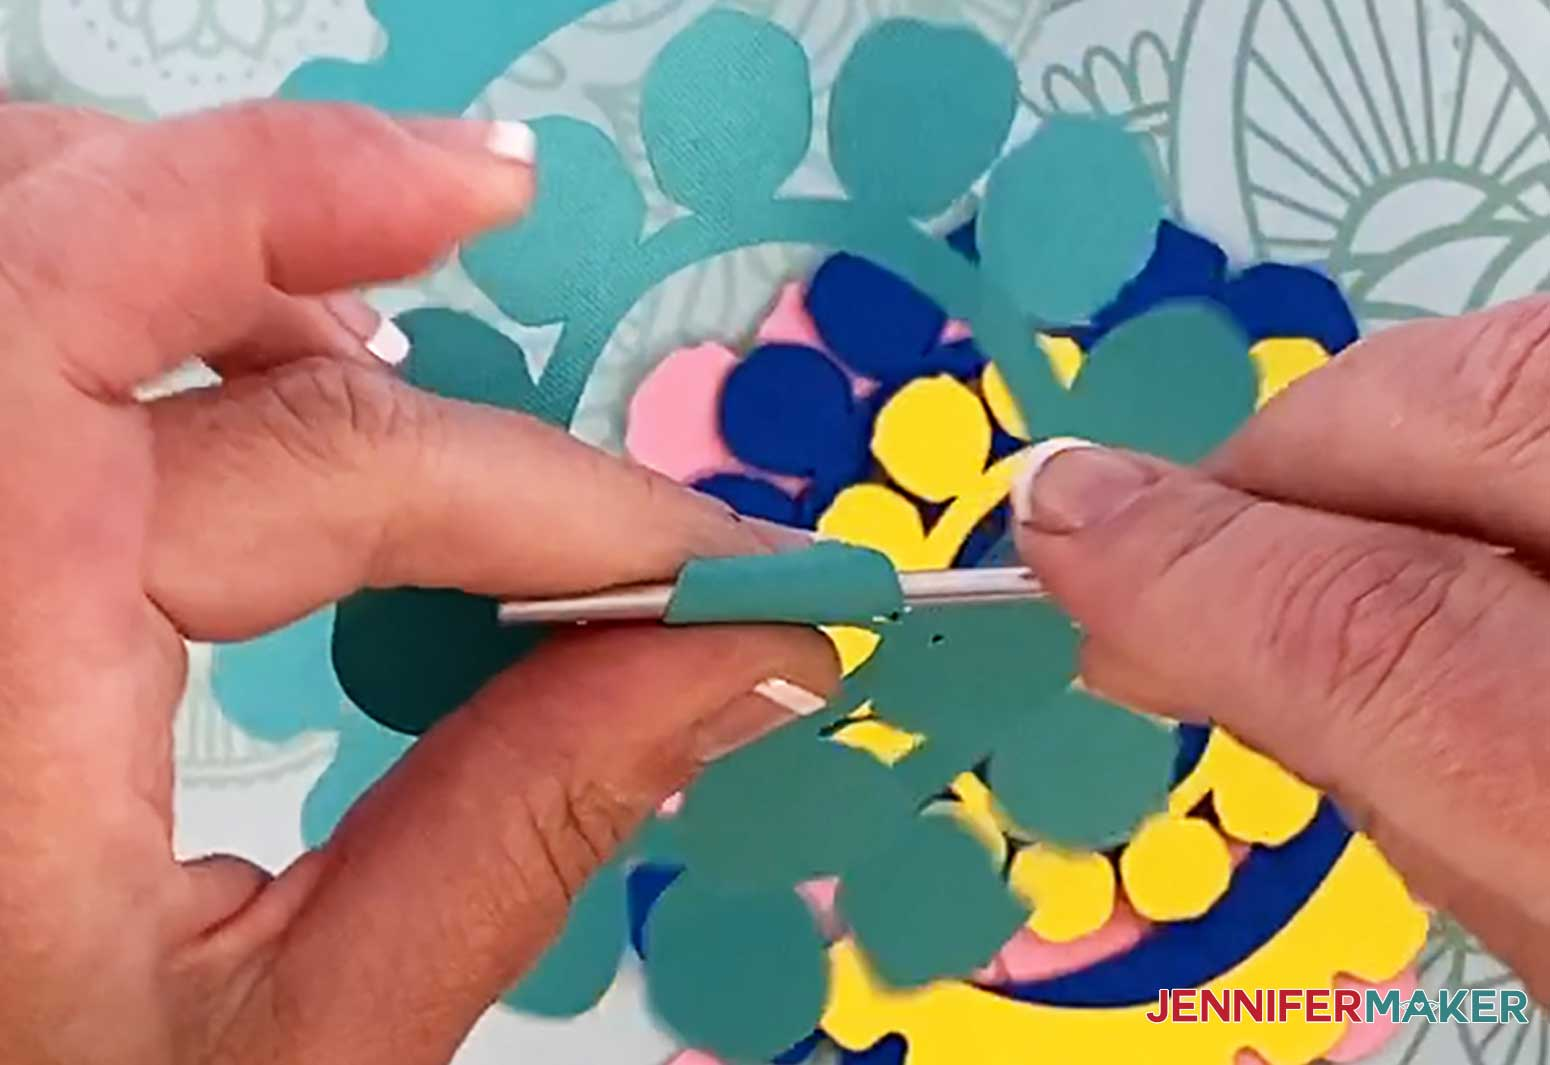 Roll the petals using a pen or other round device for the roses in my personalized unicorn frame